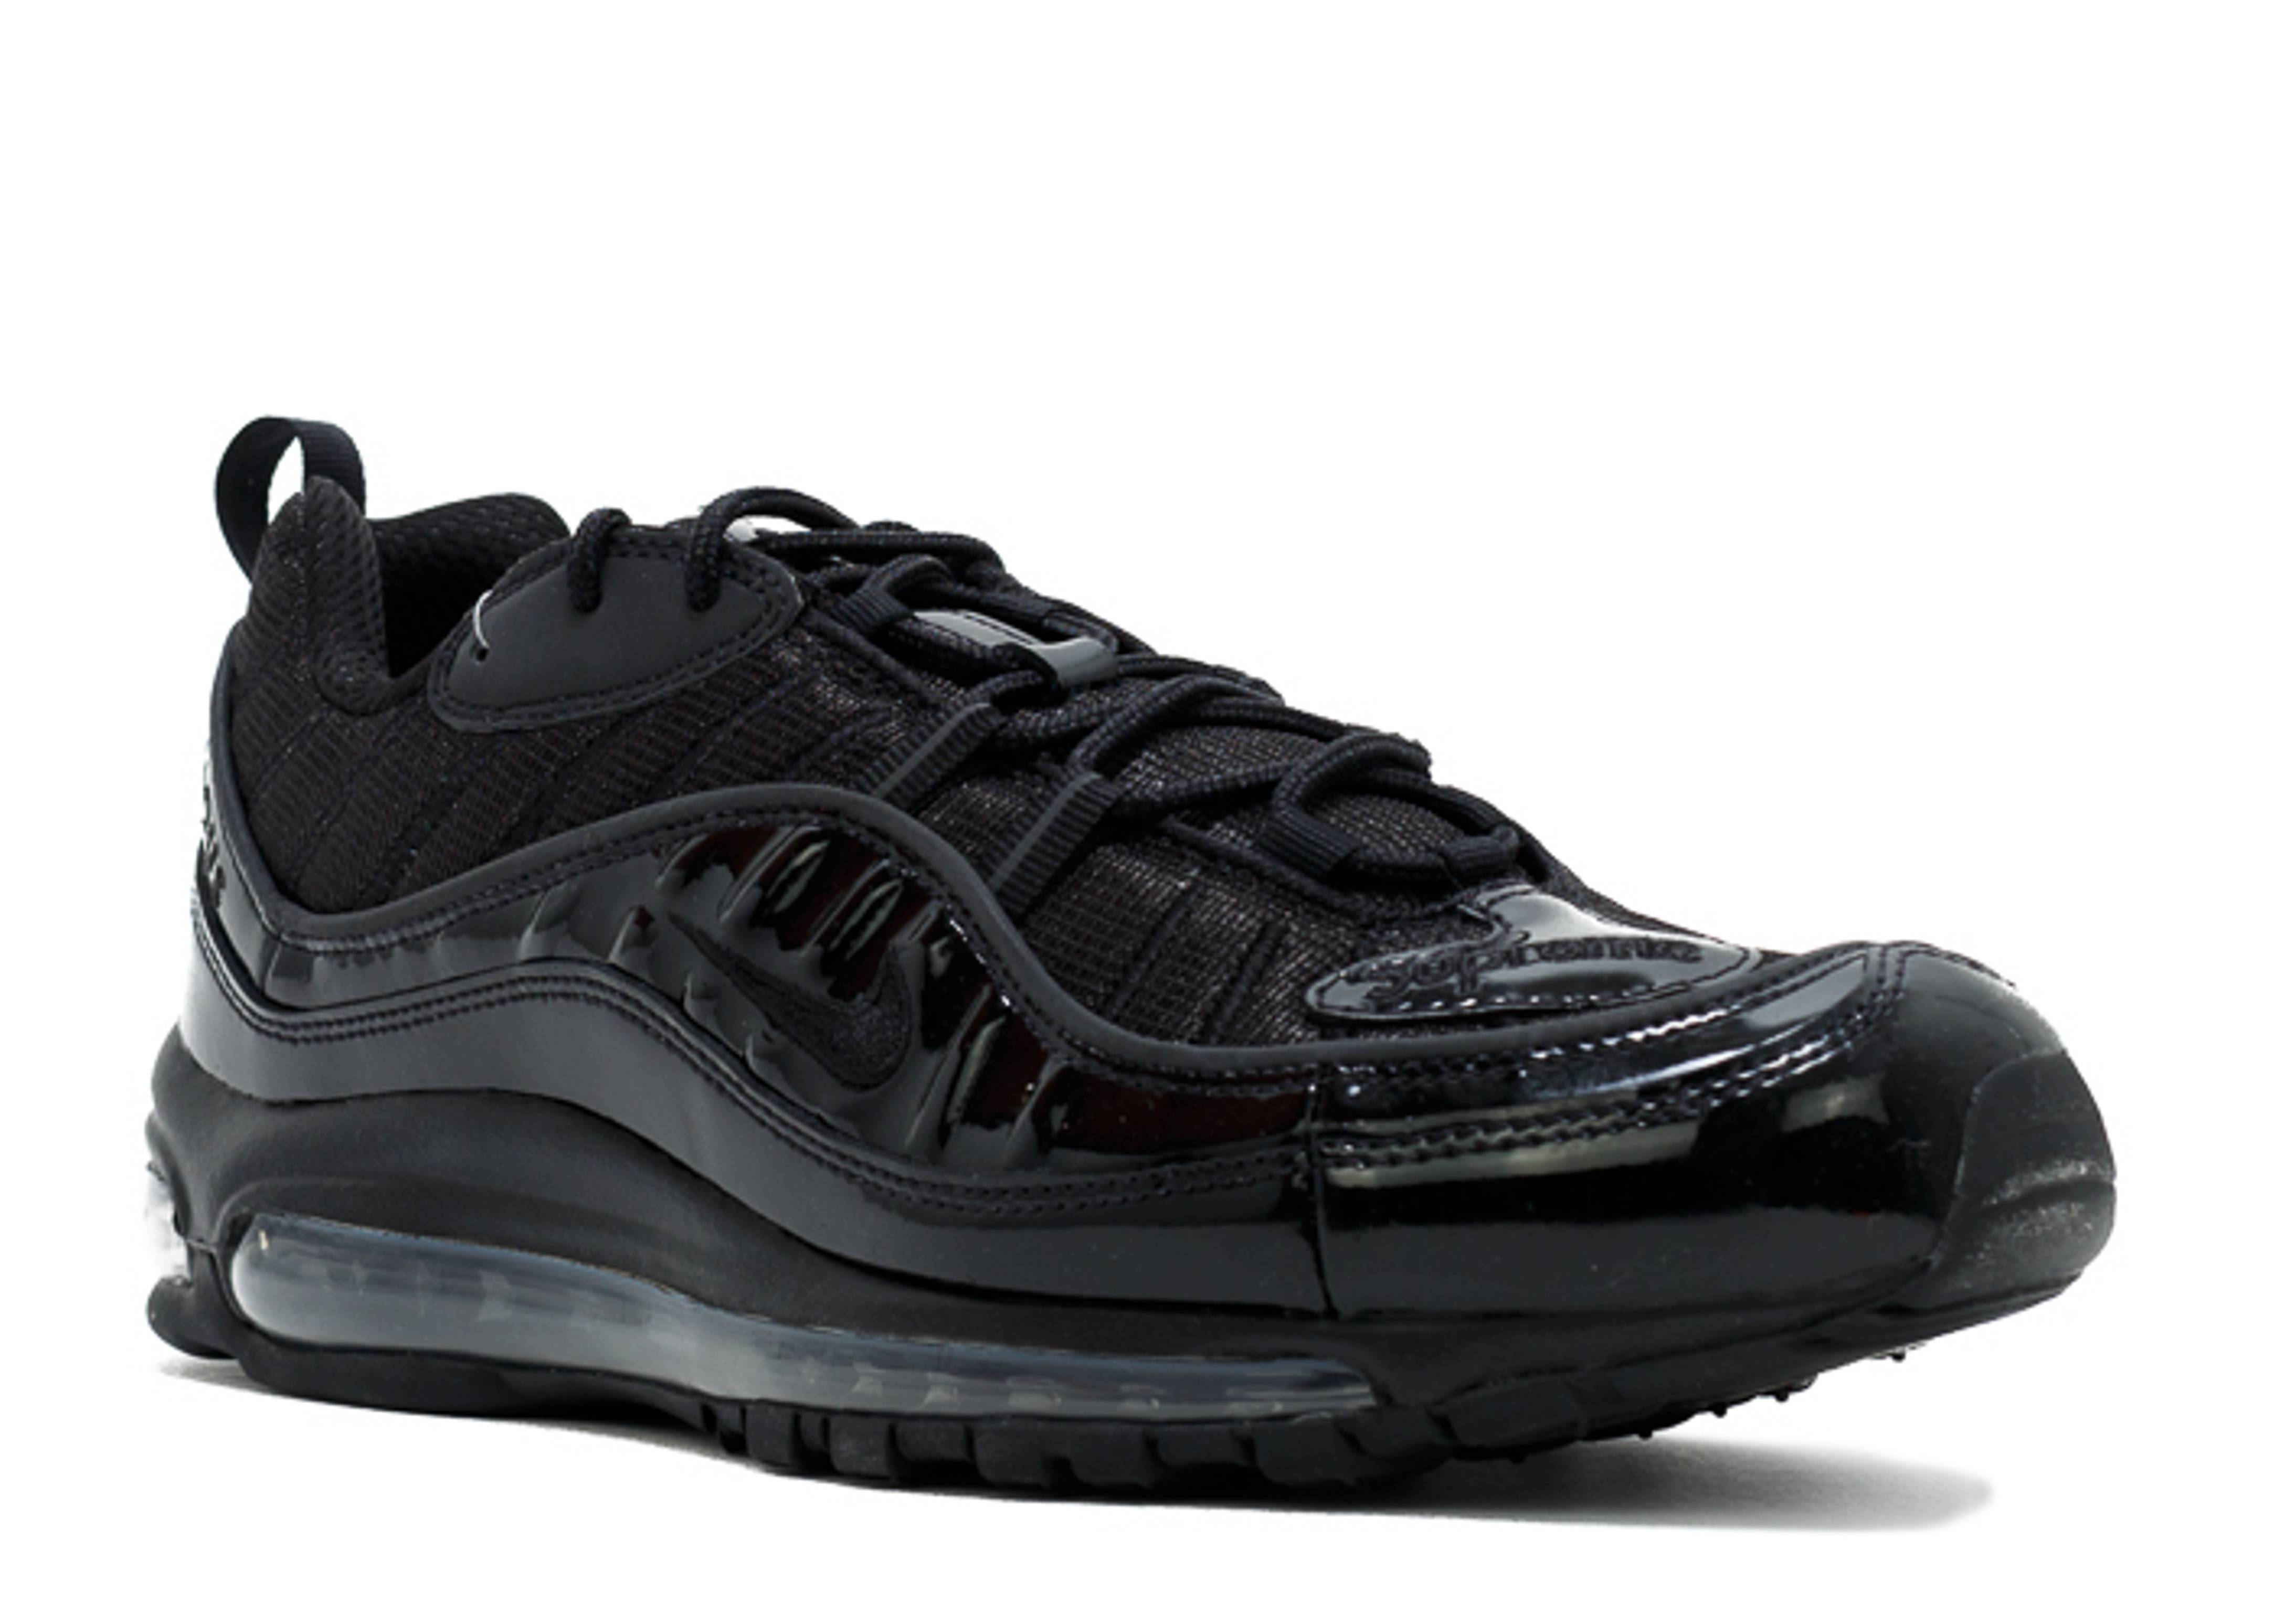 air max 98 all black air max 98 shoes foster printing. Black Bedroom Furniture Sets. Home Design Ideas